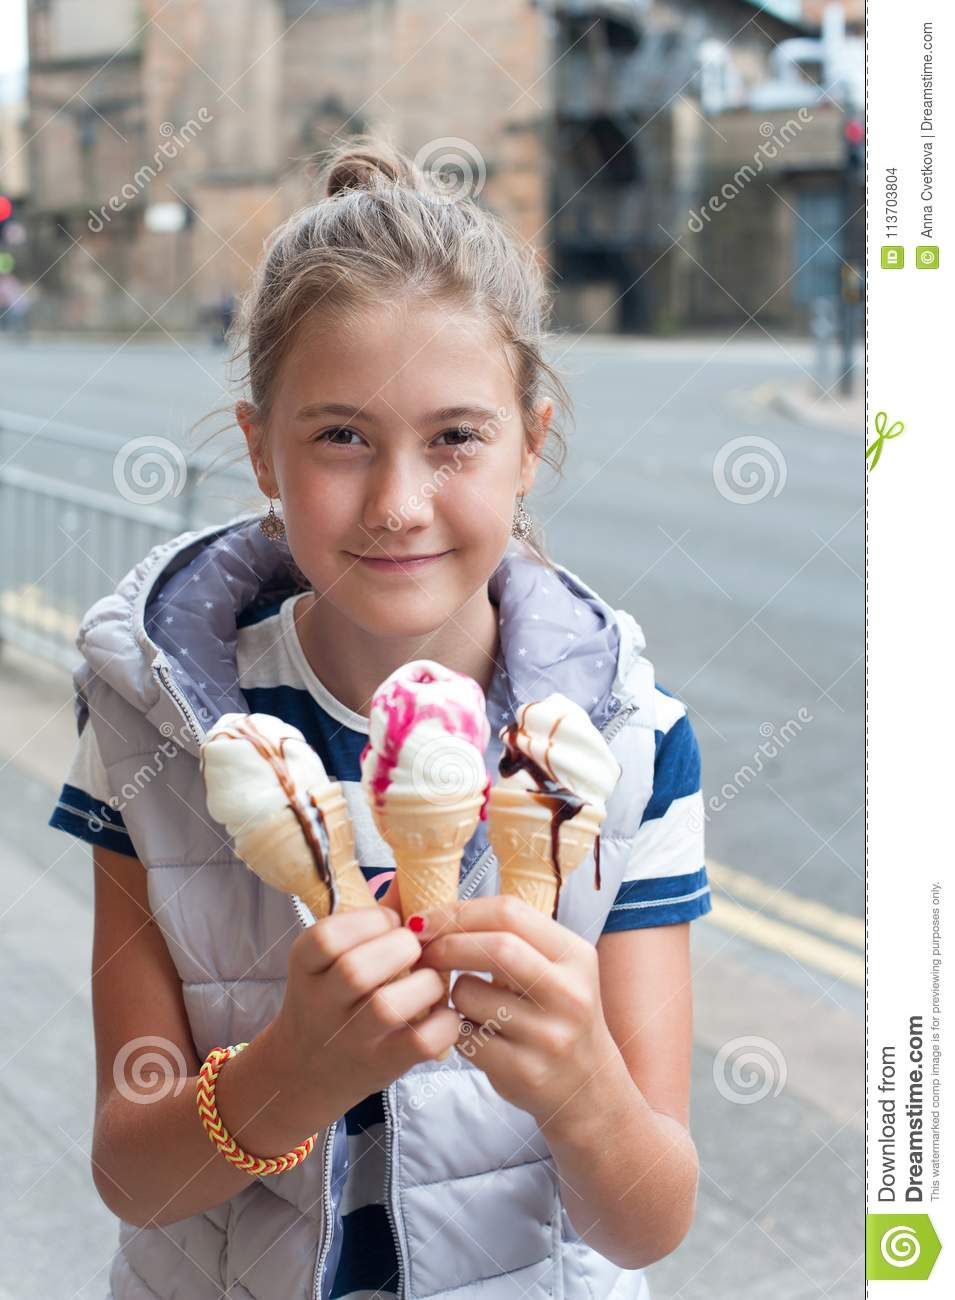 Happy smiling young pretty girl with many ice-cream. Outdoors image.